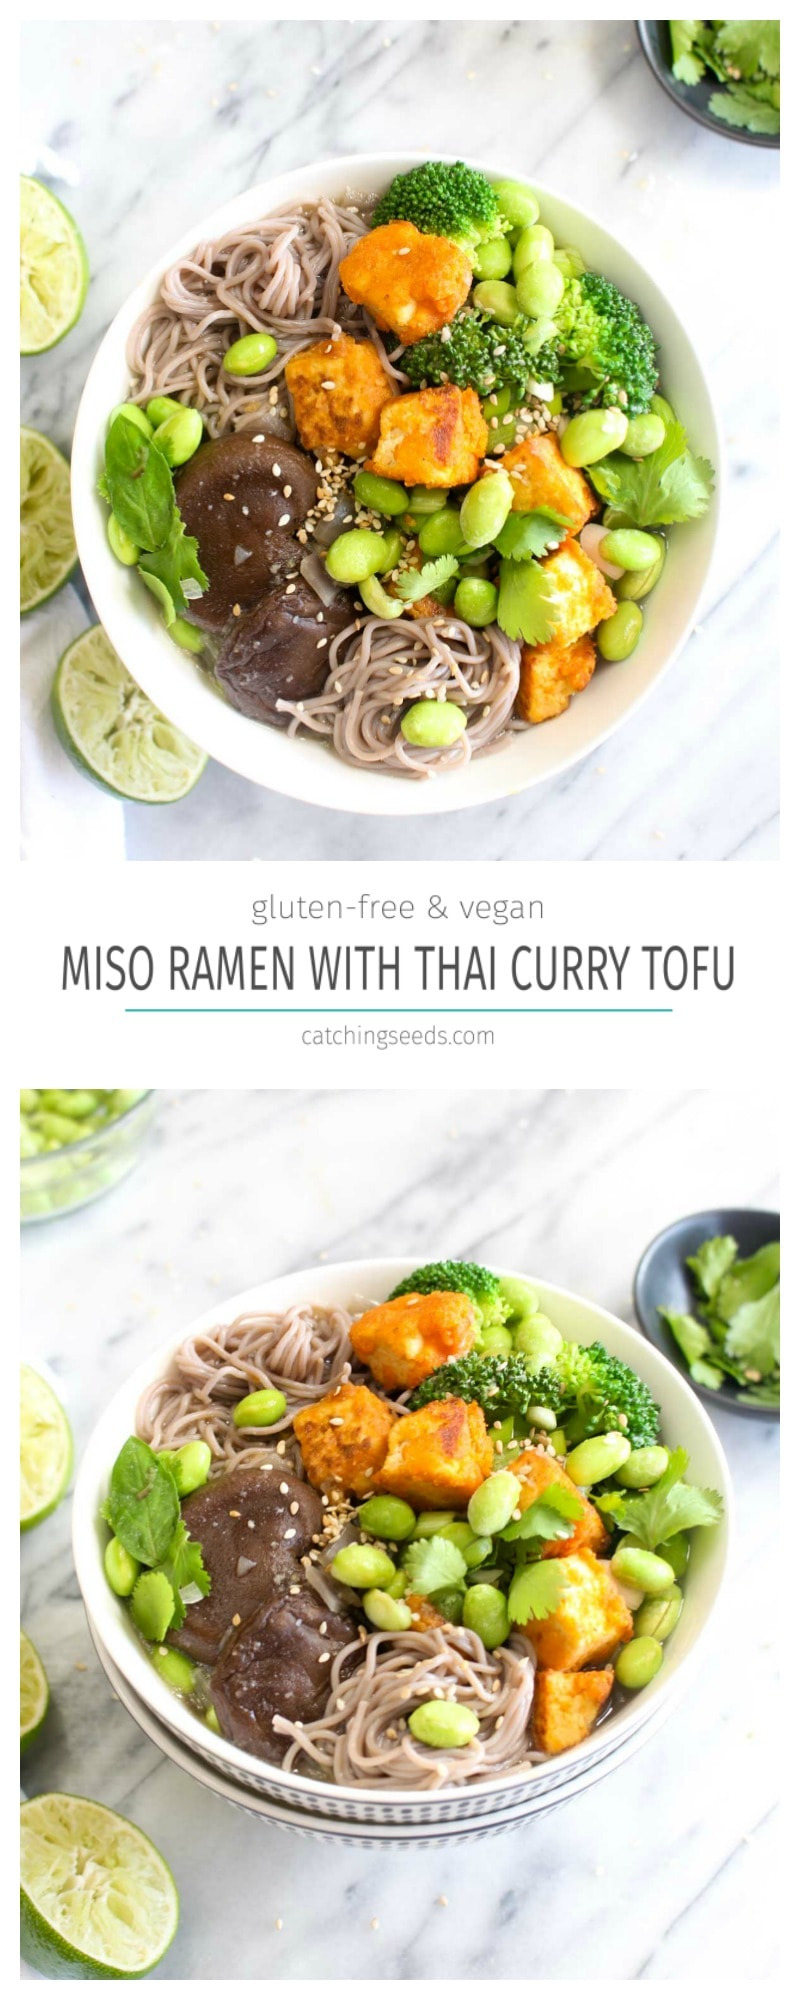 This Vegan Miso Ramen with Crispy Thai Curry Tofu is an explosion of flavor and can be made at home! This recipe is also gluten free and healthy. | CatchingSeeds.com